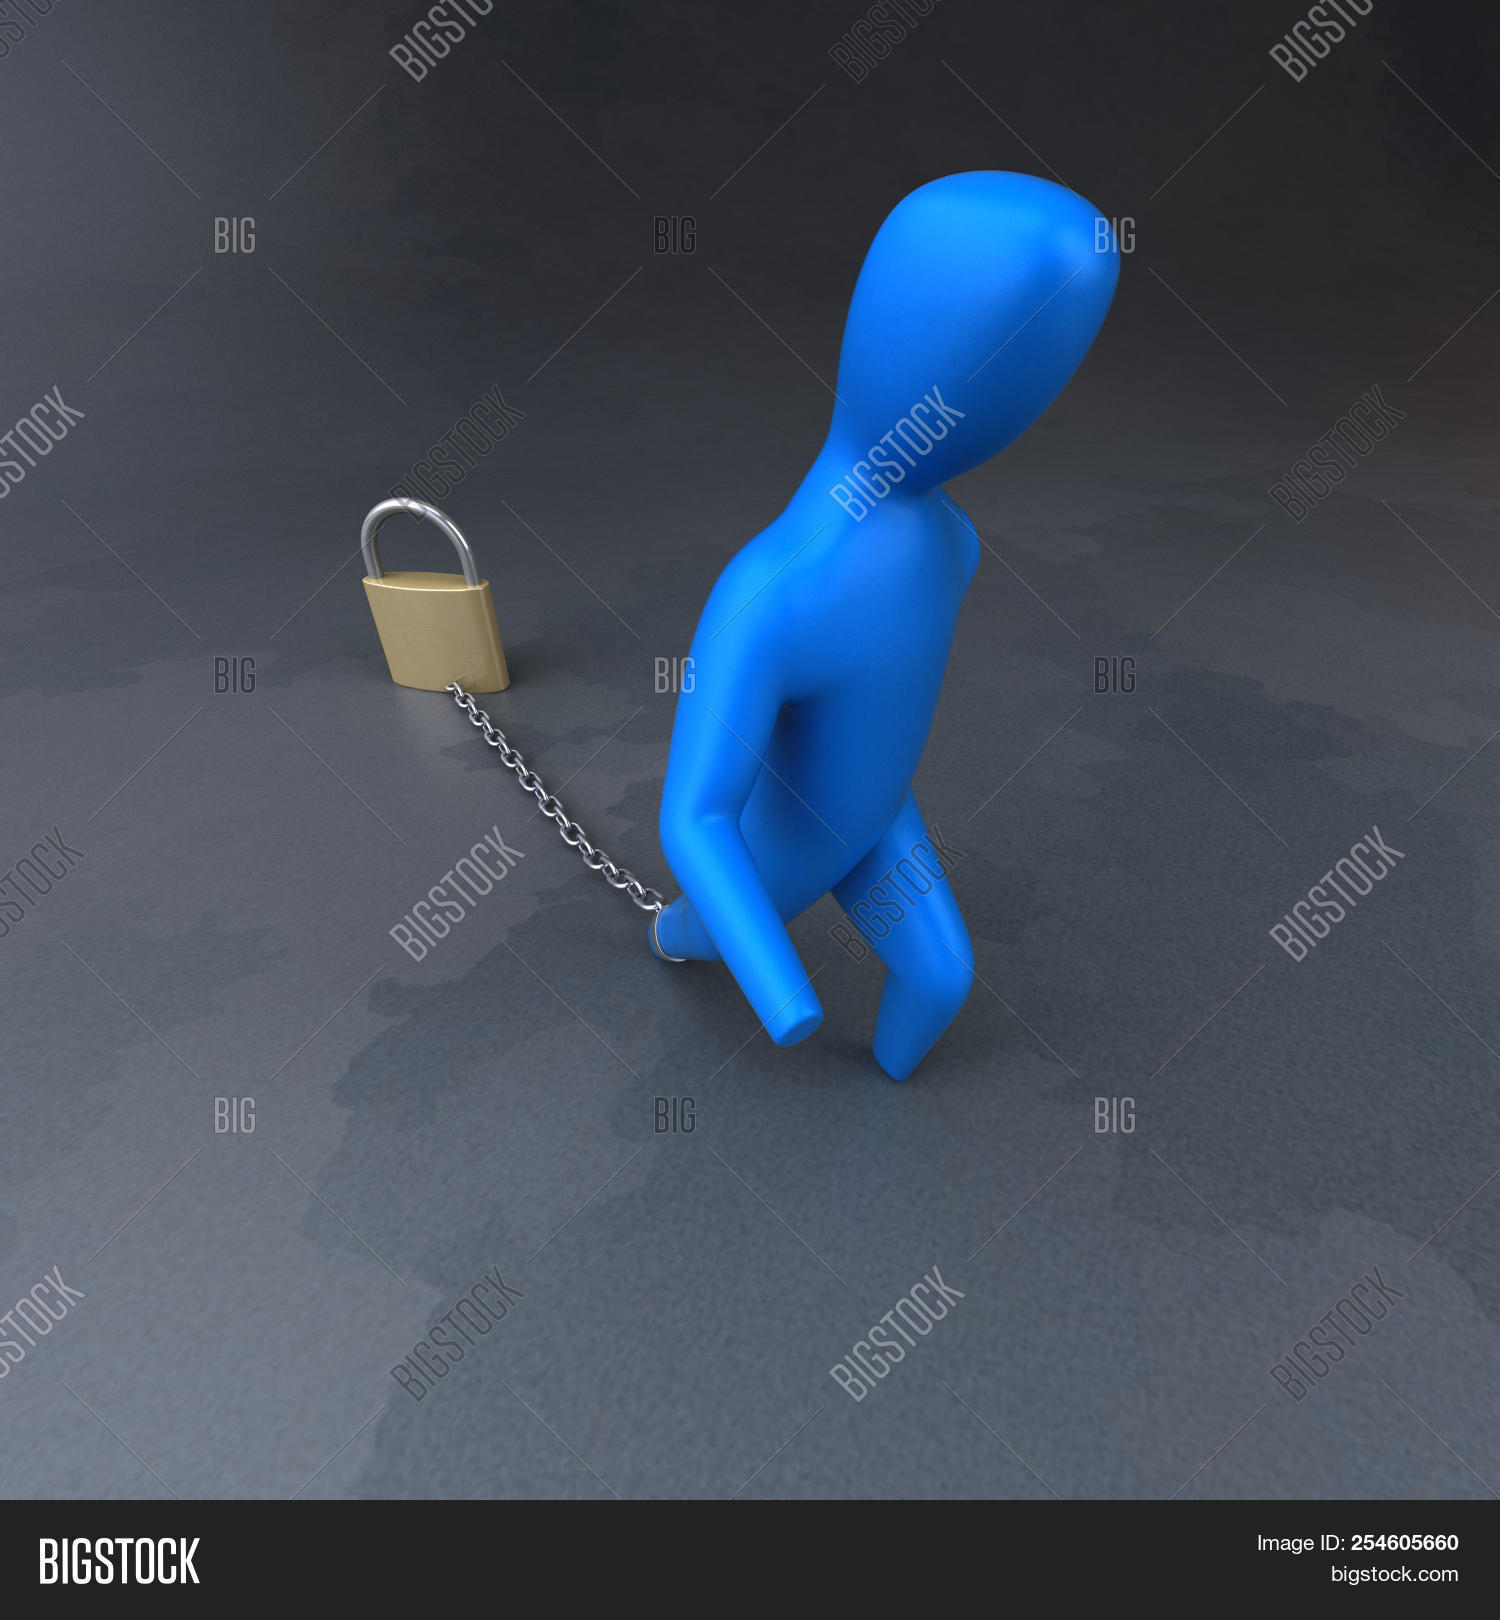 3d,animation,antivirus,anxiety,bondage,burden,captive,captivity,chain,concept,crime,criminal,debt,depression,dragging,figure,freedom,human,iron,justice,law,liberation,link,loan,man,metal,padlock,paying,philosophy,pressure,prison,prisoner,problem,psychology,security,slave,slavery,society,stress,symbol,tax,thief,trouble,virus,walking,weight